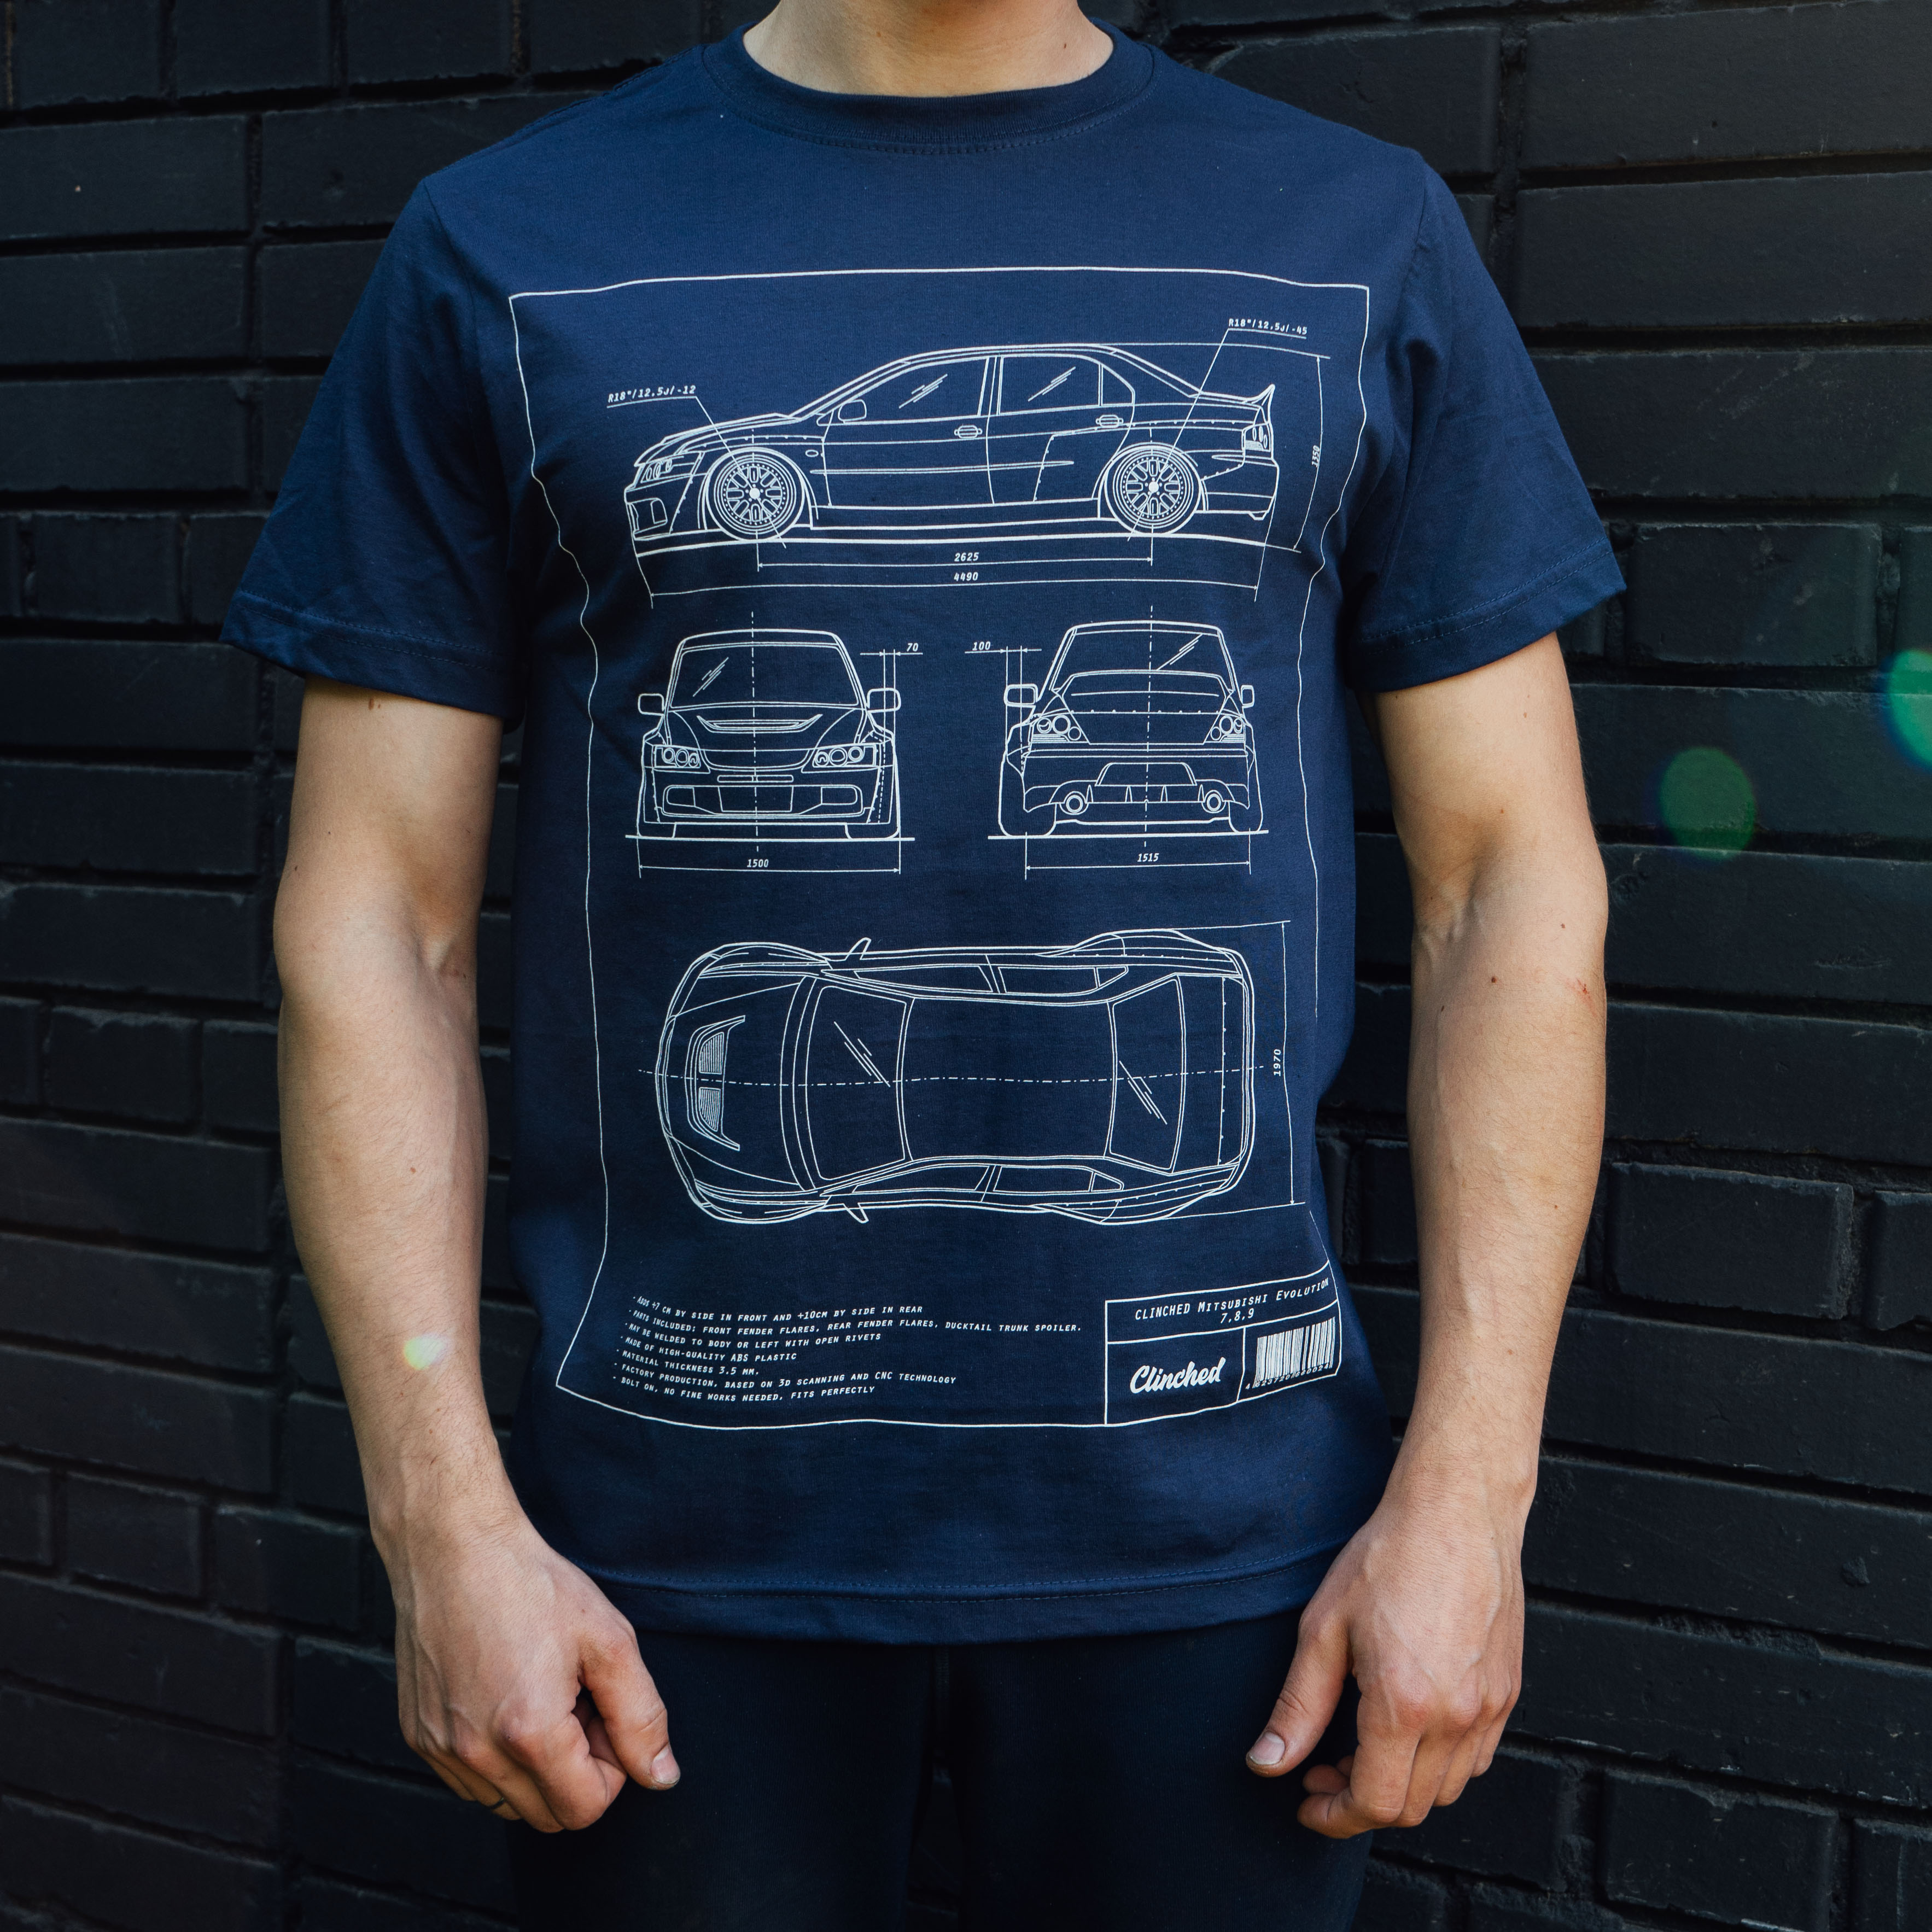 Mitsubishi evo blueprint t shirt clinched flares and widebody kits malvernweather Choice Image